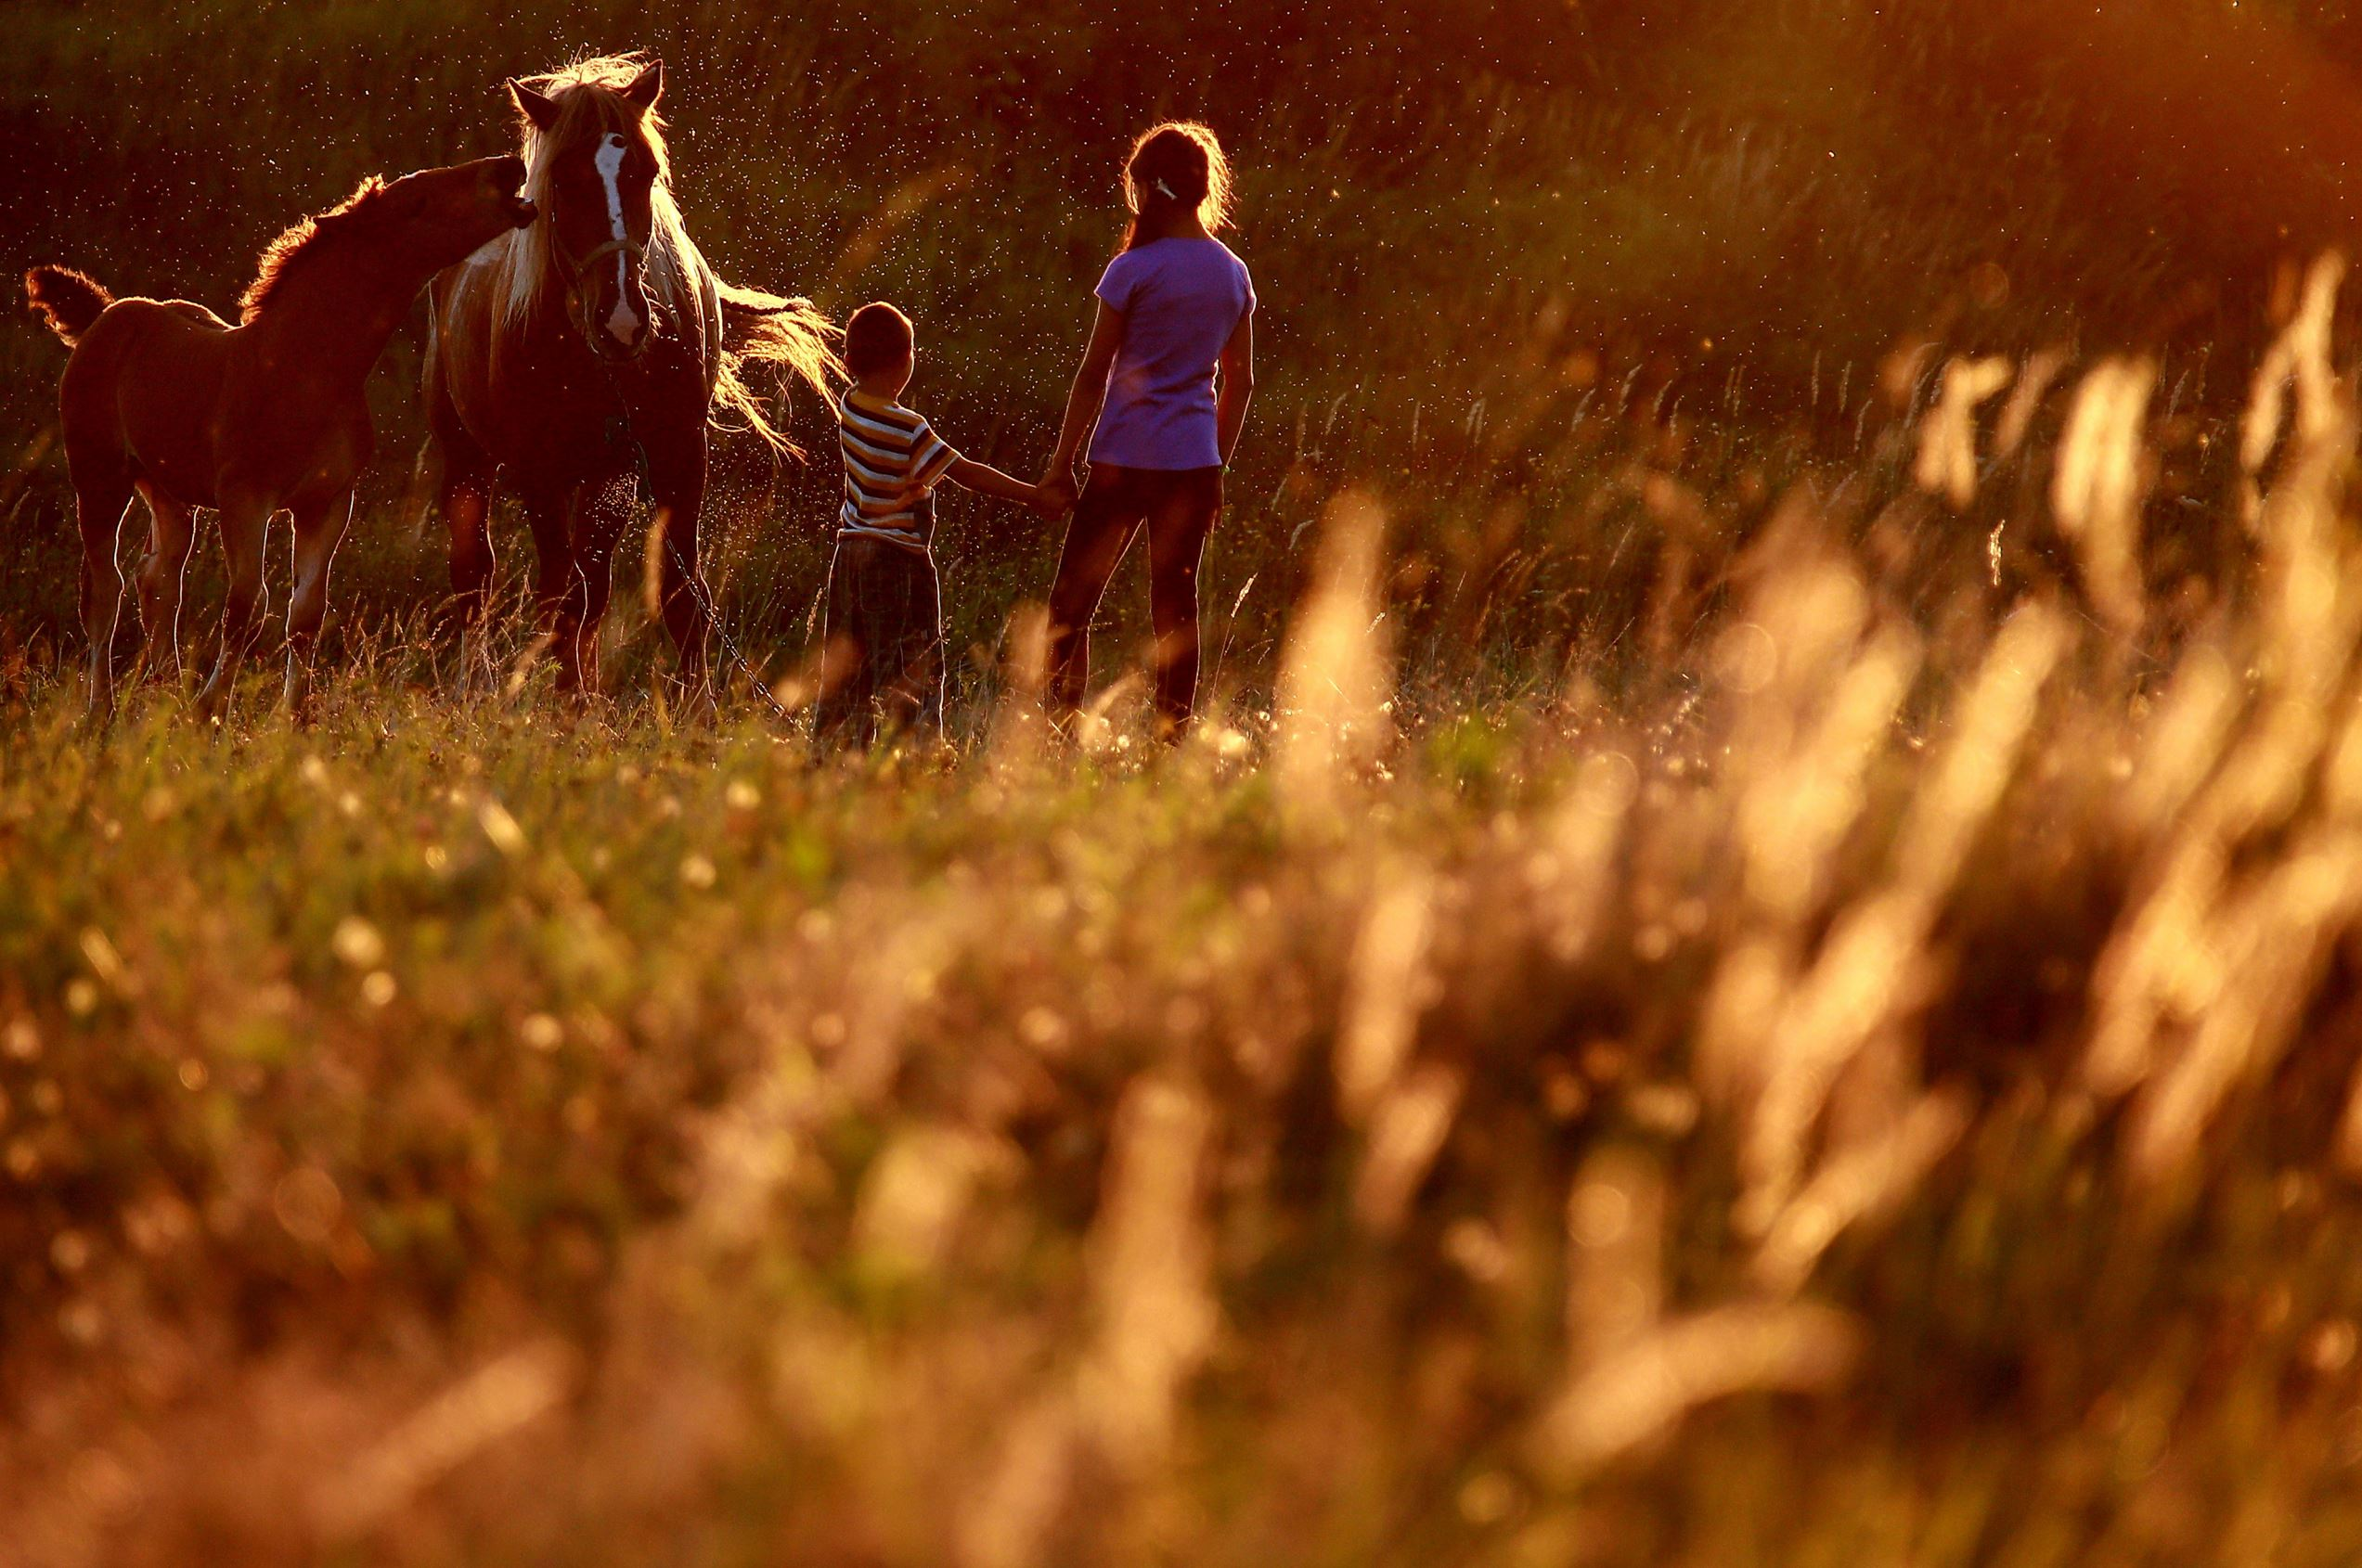 Слайд 73 из 86: KOSTROMA REGION, RUSSIA  AUGUST 16, 2016: Children with a horse in a field near the village of Lobanovo. Vladimir Smirnov/TASS (Photo by Vladimir Smirnov\TASS via Getty Images)